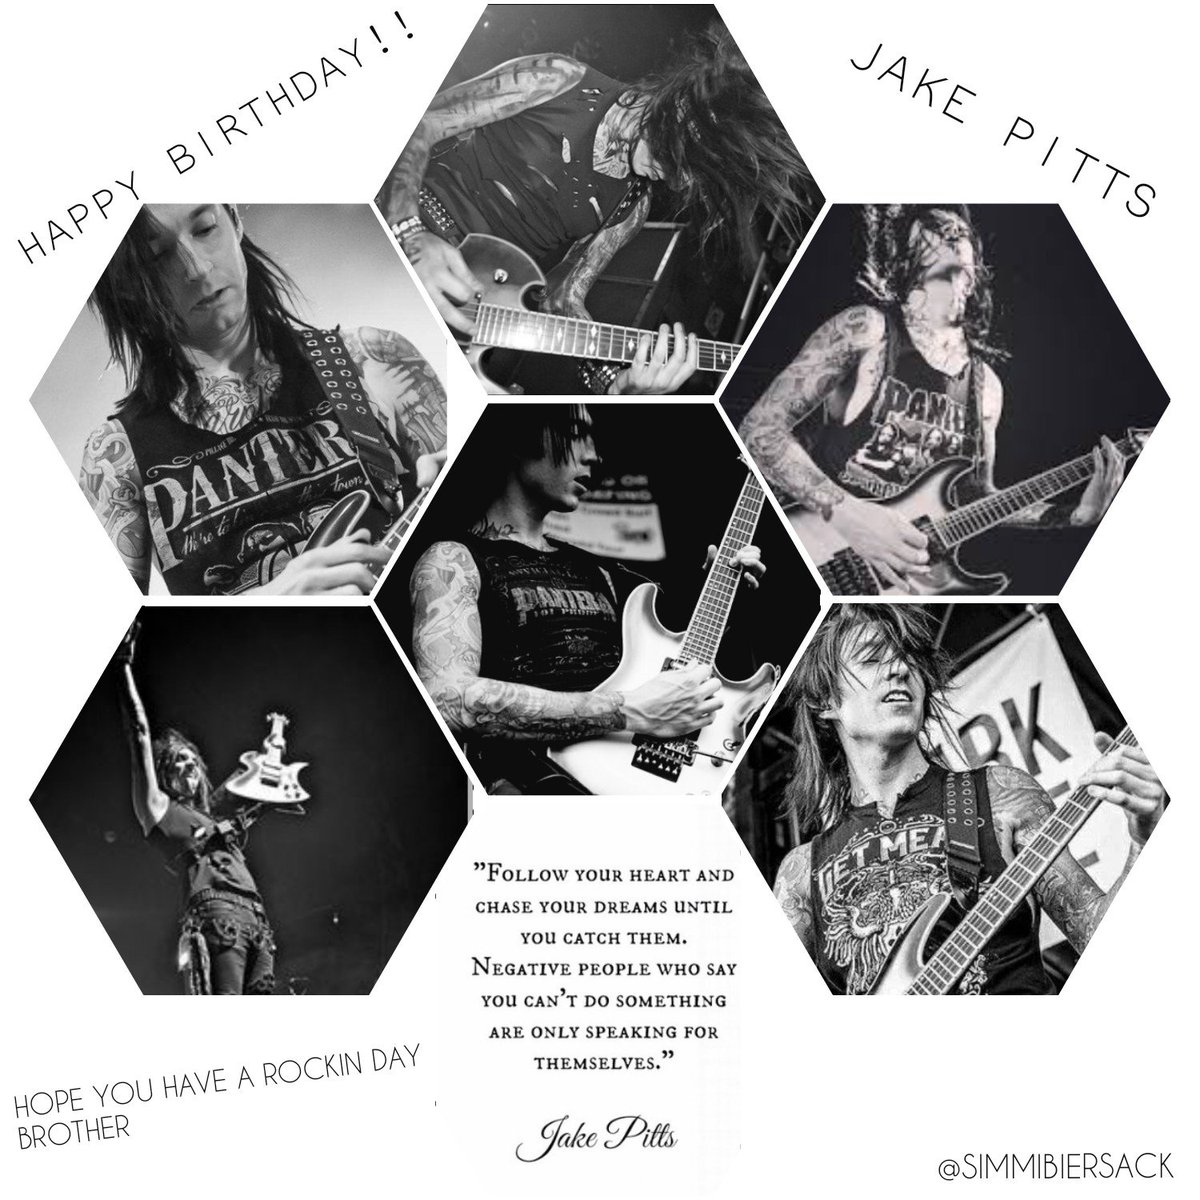 @JakePittsBVB Happy Birthday Brother!! To One Of The Best Guitarists That Is Out Of This World, Have A Rockin Day!! #HAPPYBIRTHDAYJAKE #BVB <br>http://pic.twitter.com/vl7LrZeSrl